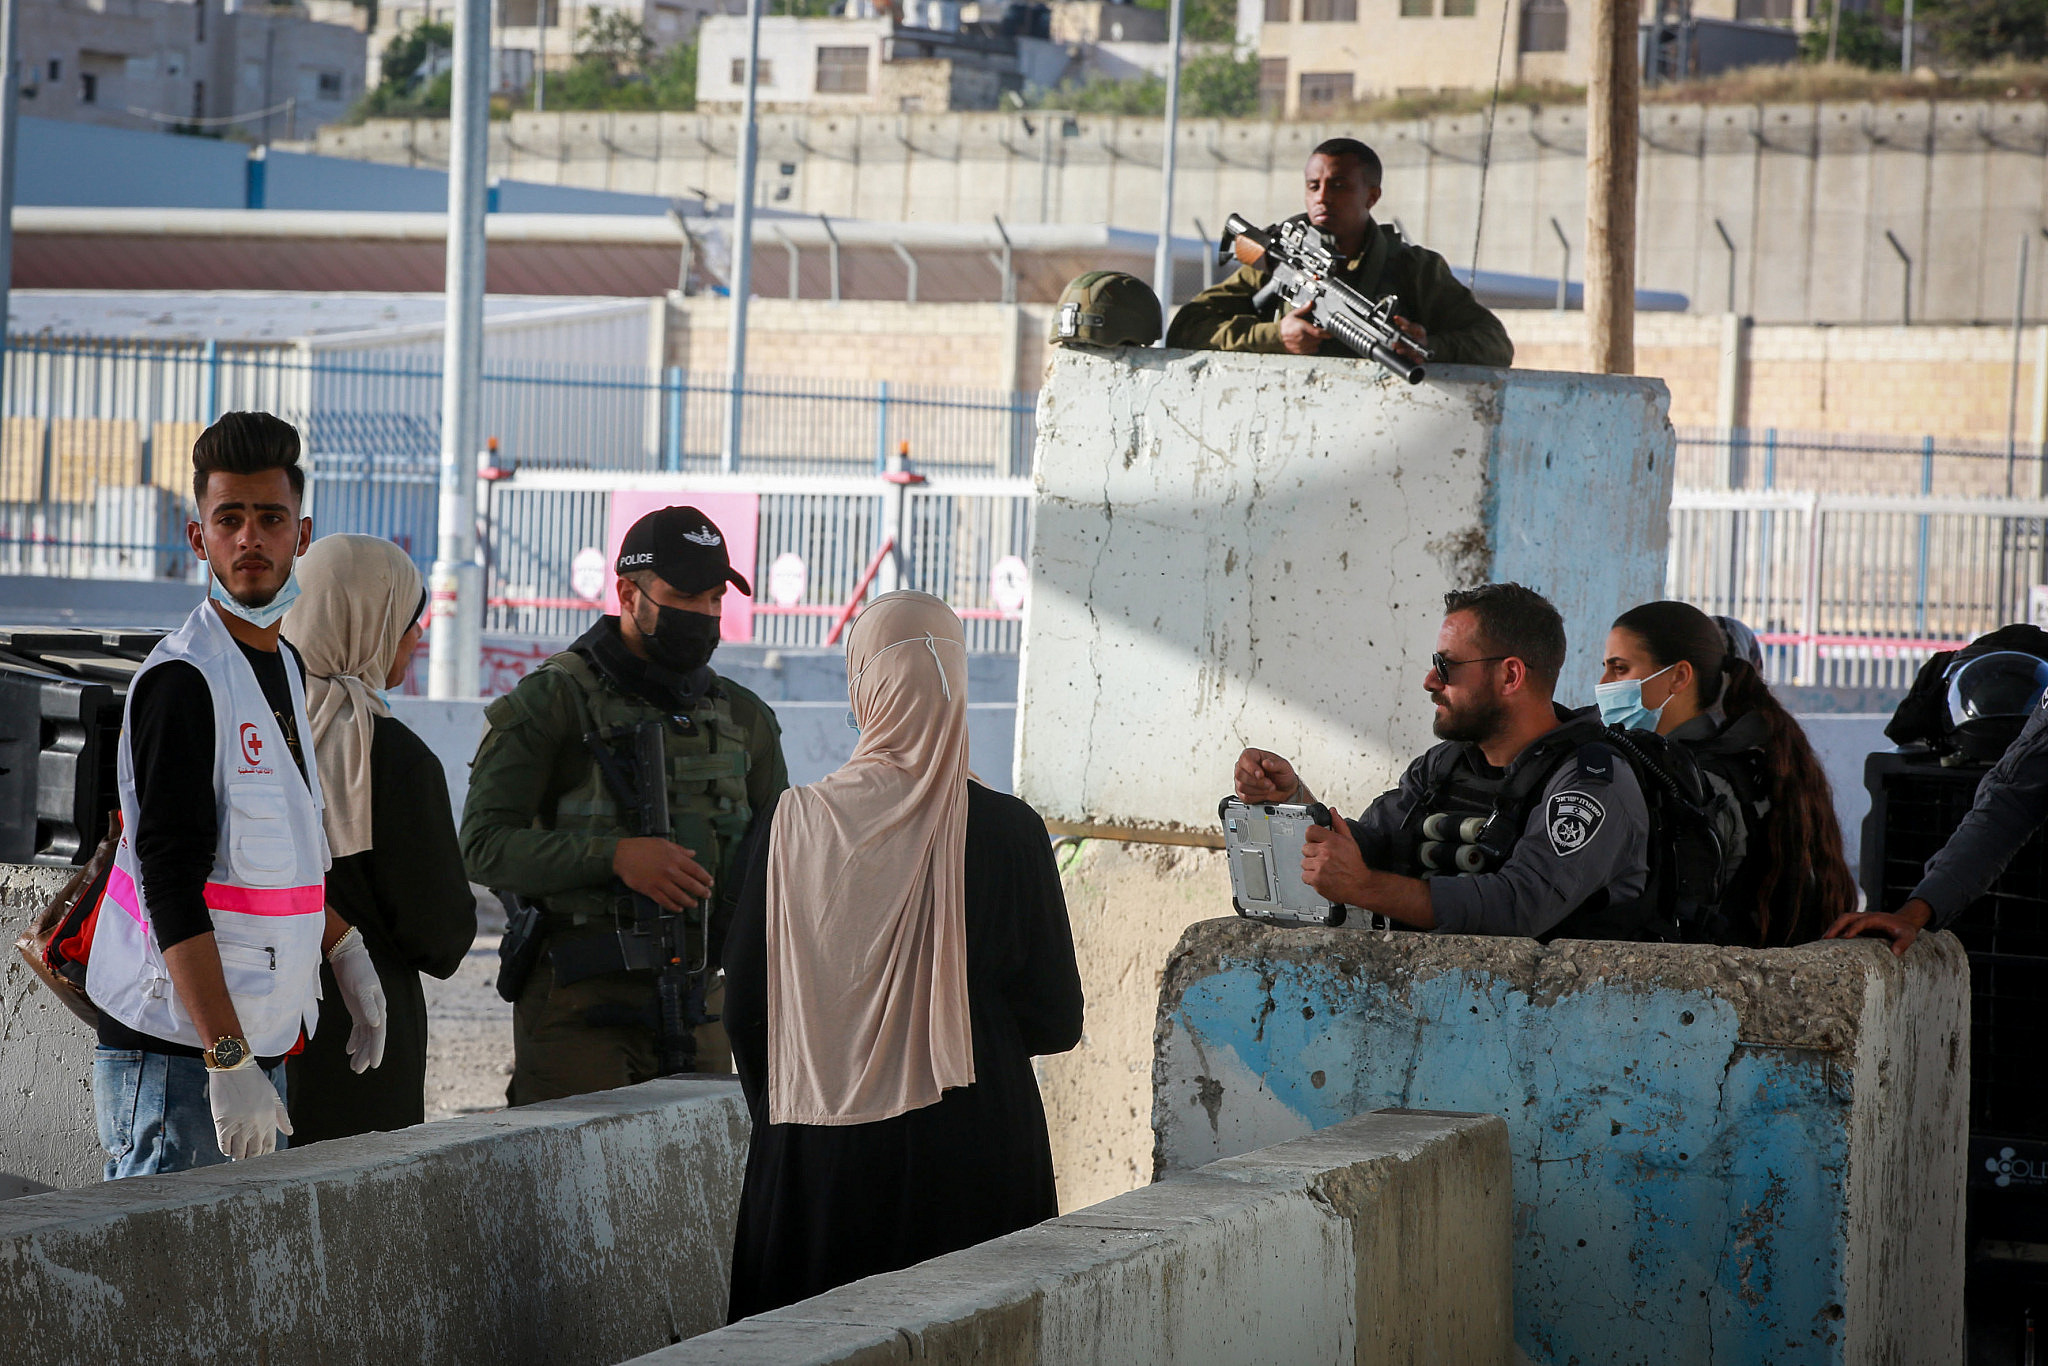 Palestinians cross through Qalandiya checkpoint into Jerusalem to attend Friday prayers during the holy month of Ramadan, near the West Bank city of Ramallah, April 30, 2021. (Flash90)